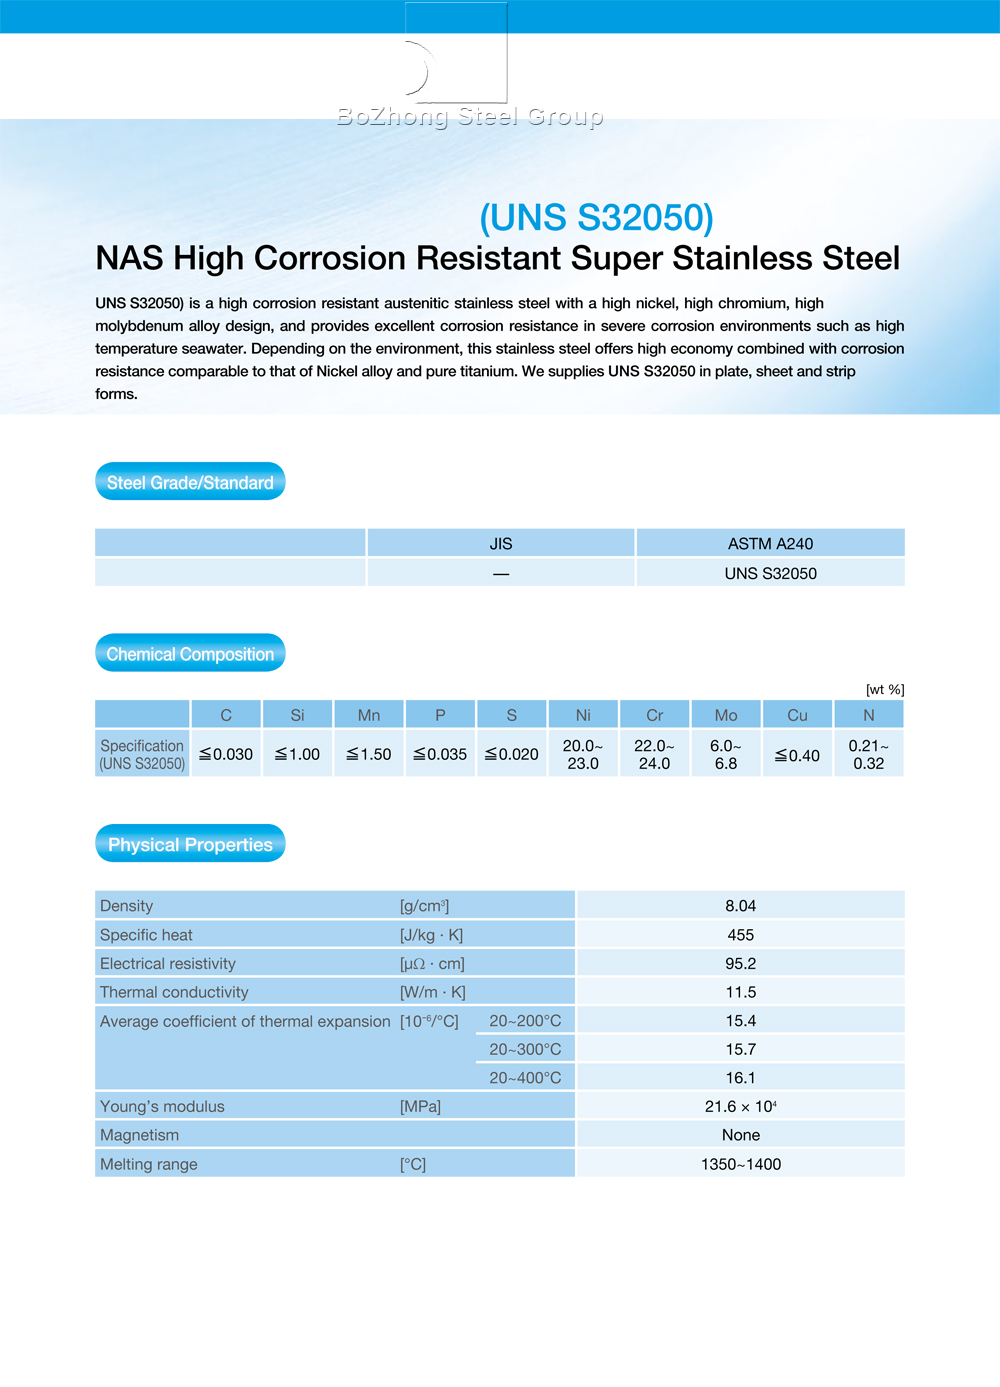 UNS-S32050-high-corrosion-resistant-austenitic-stainless-steel-Manufacturer